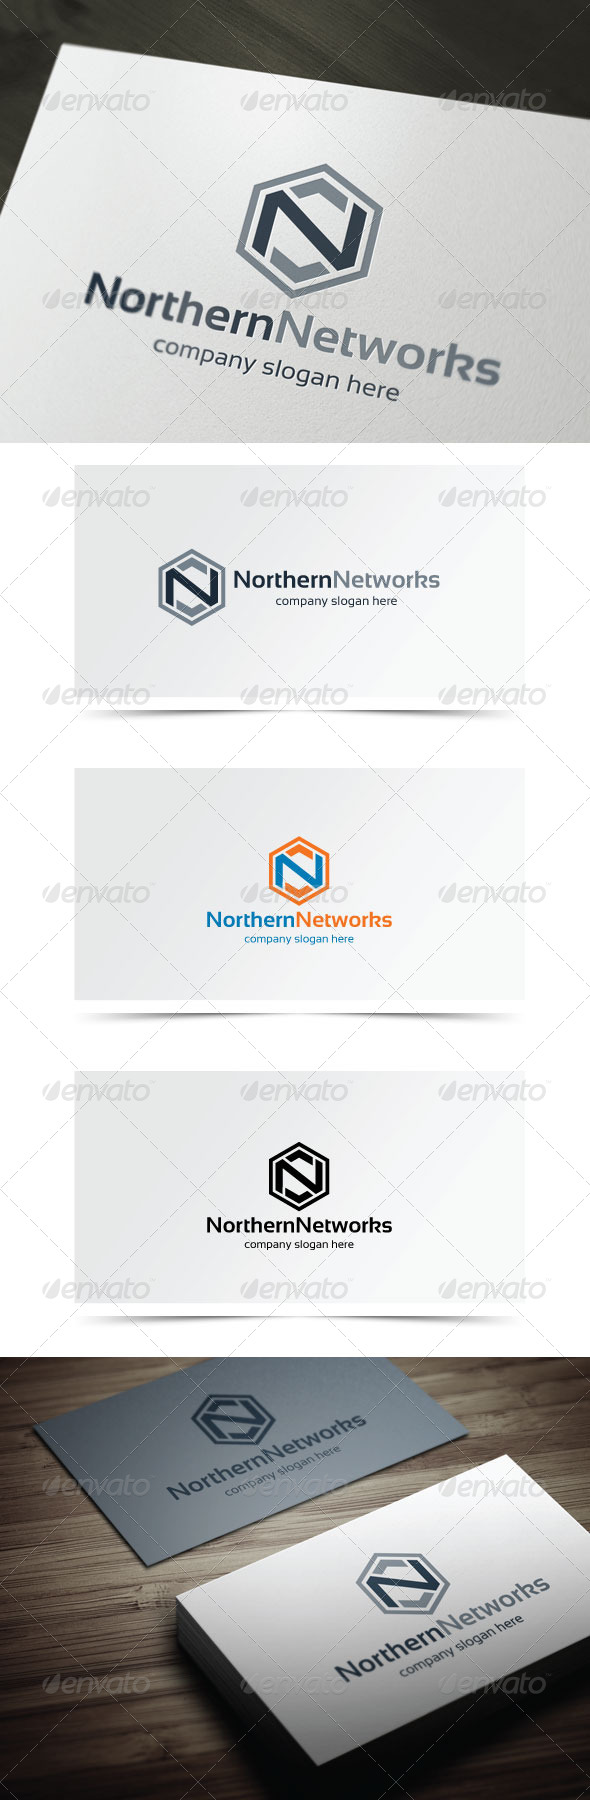 GraphicRiver Northern Networks 5926567